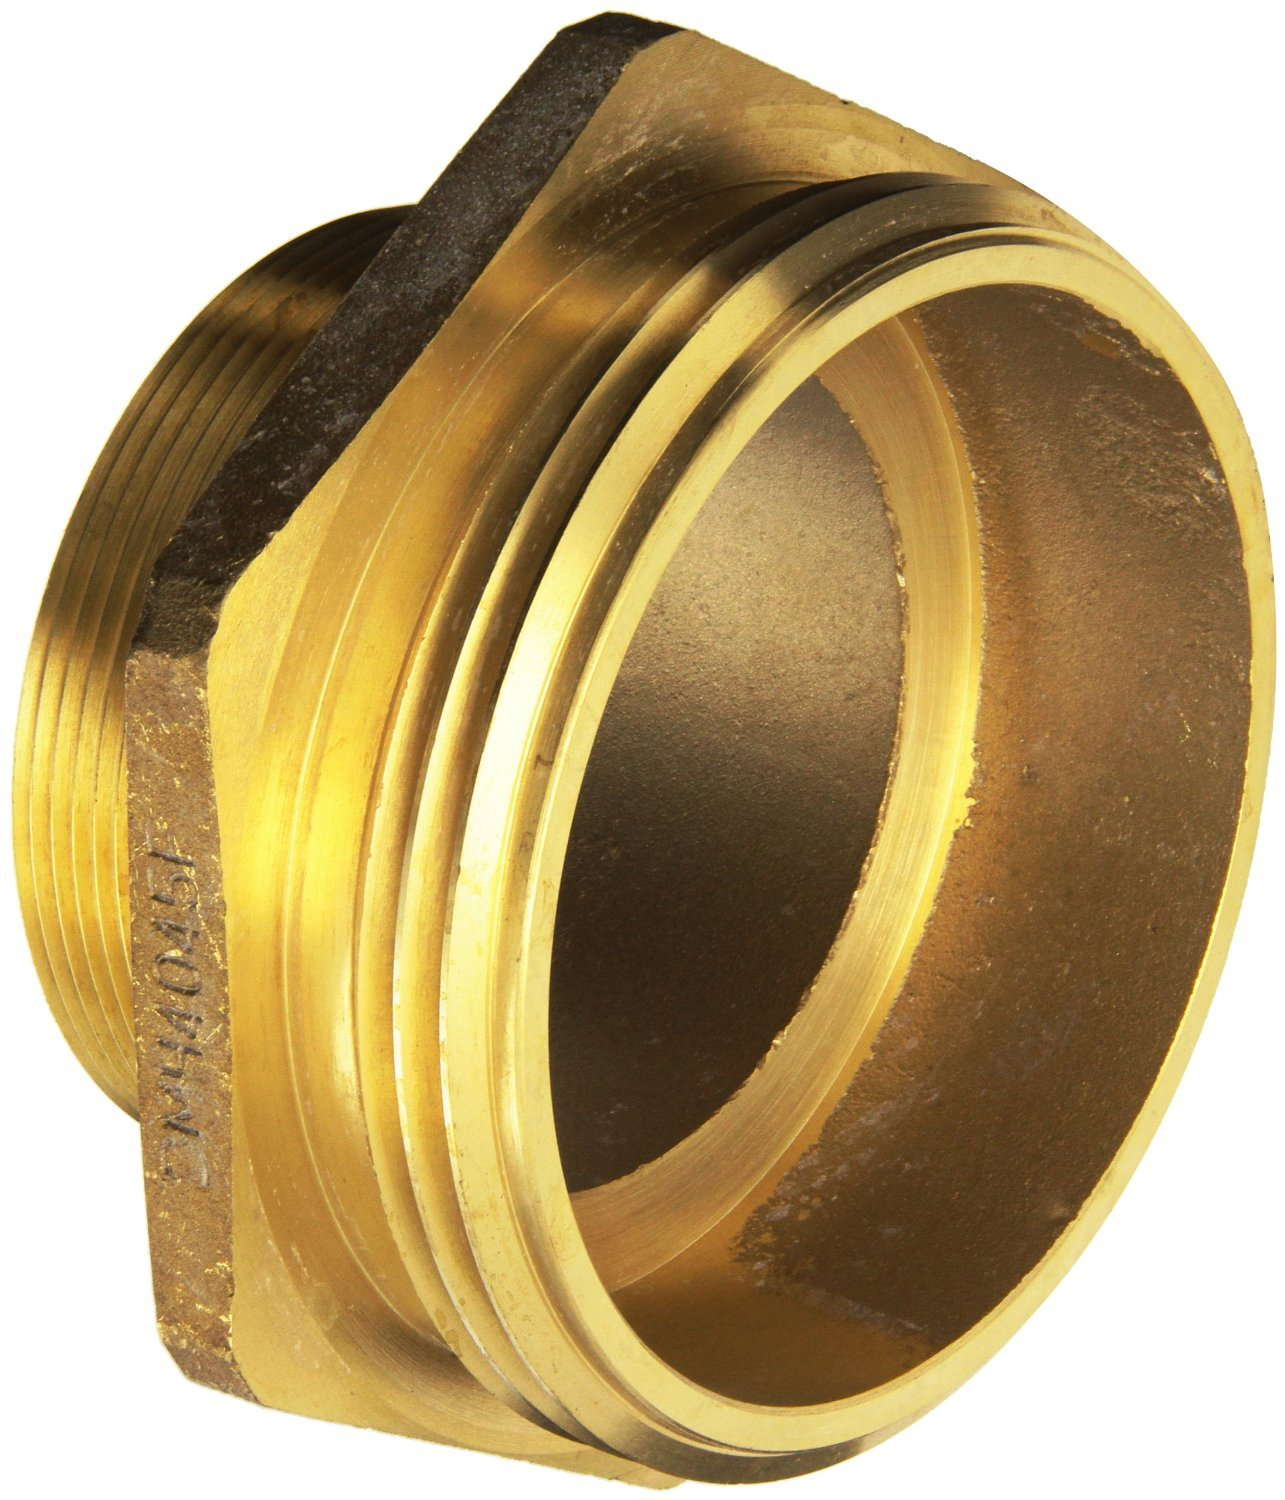 Dixon Valve DMH4045F Cast Brass Fire Equipment, Increaser Hex Nipple, 4'' NPT Male x 4-1/2'' NST (NH) Male by Dixon Valve & Coupling (Image #1)